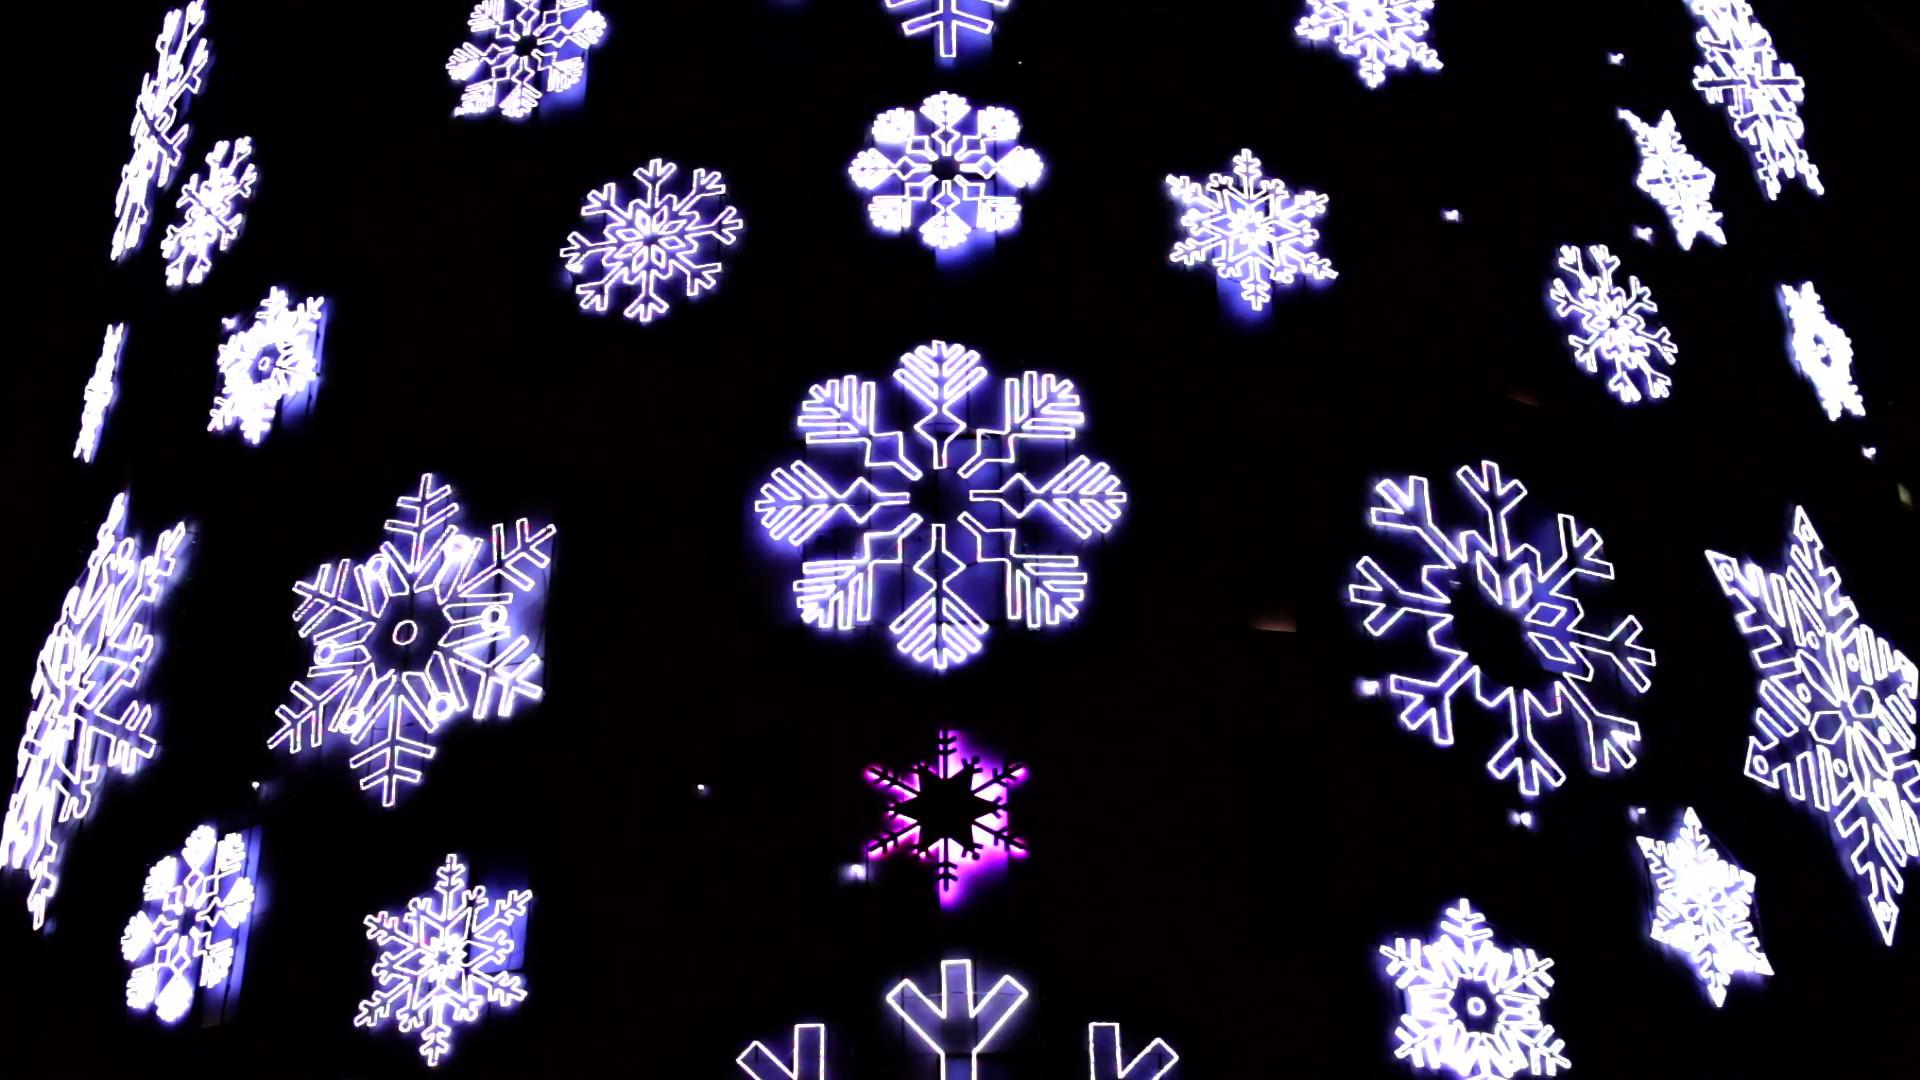 Led Christmas Snowflakes Decorations